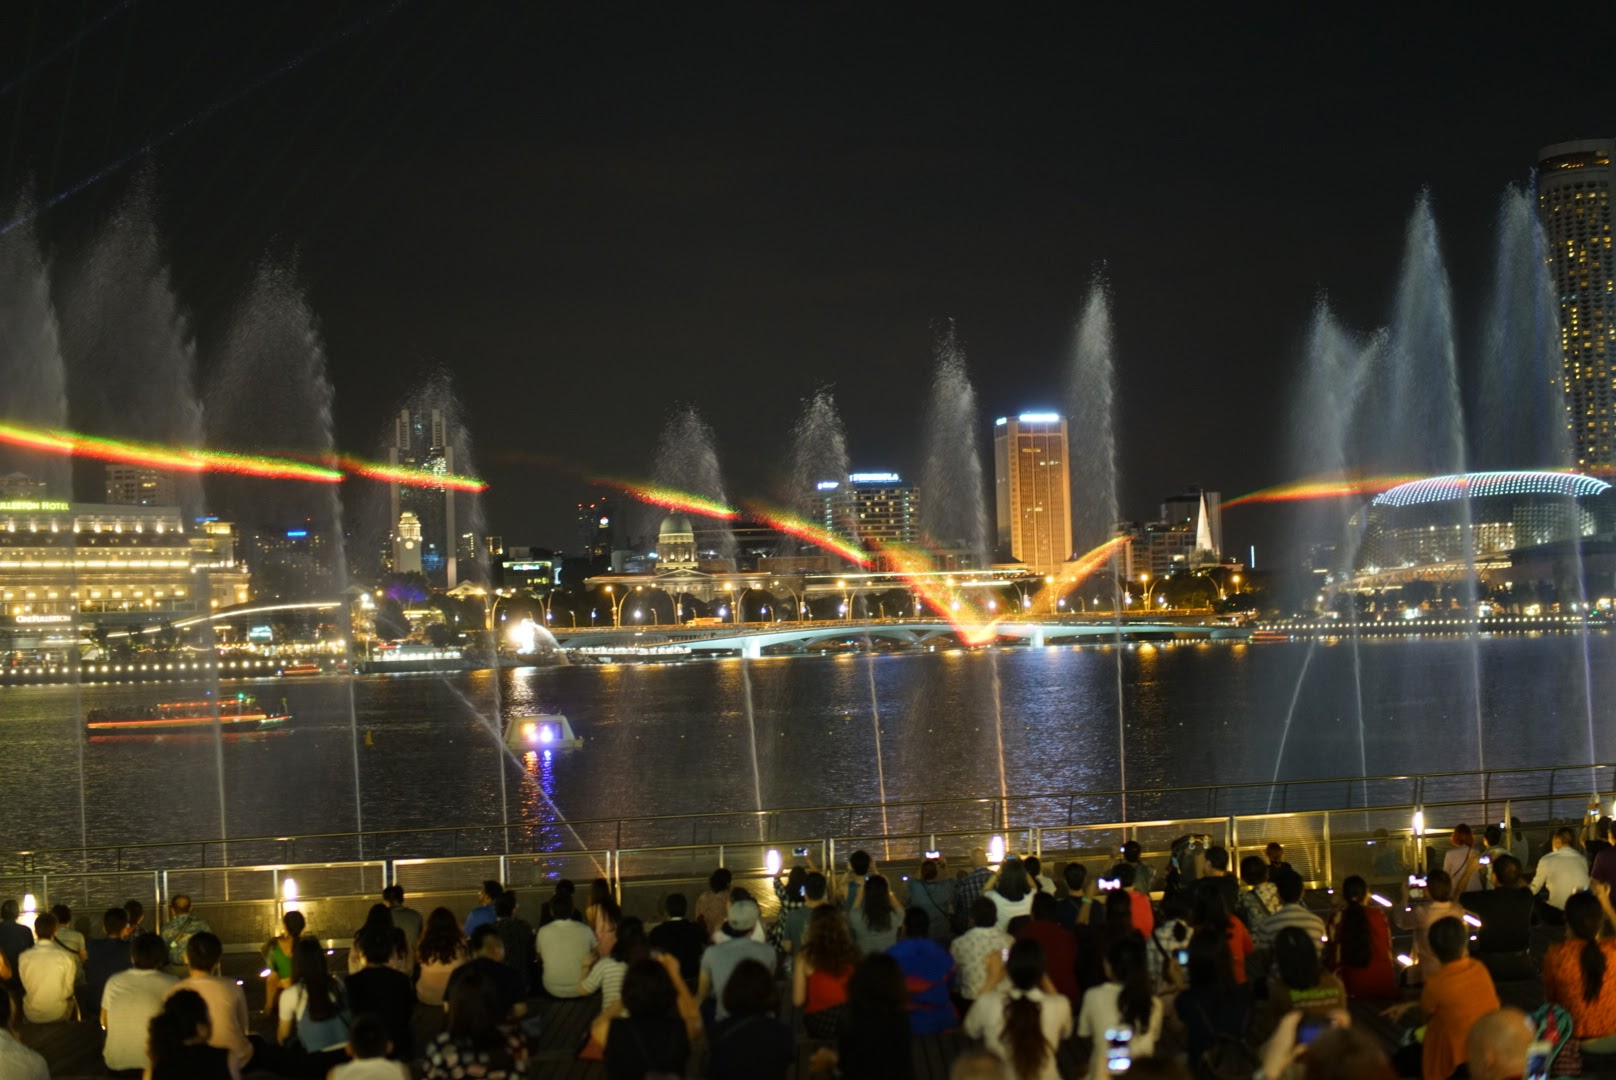 The water show in front of the Marina Bay Sands Shoppes